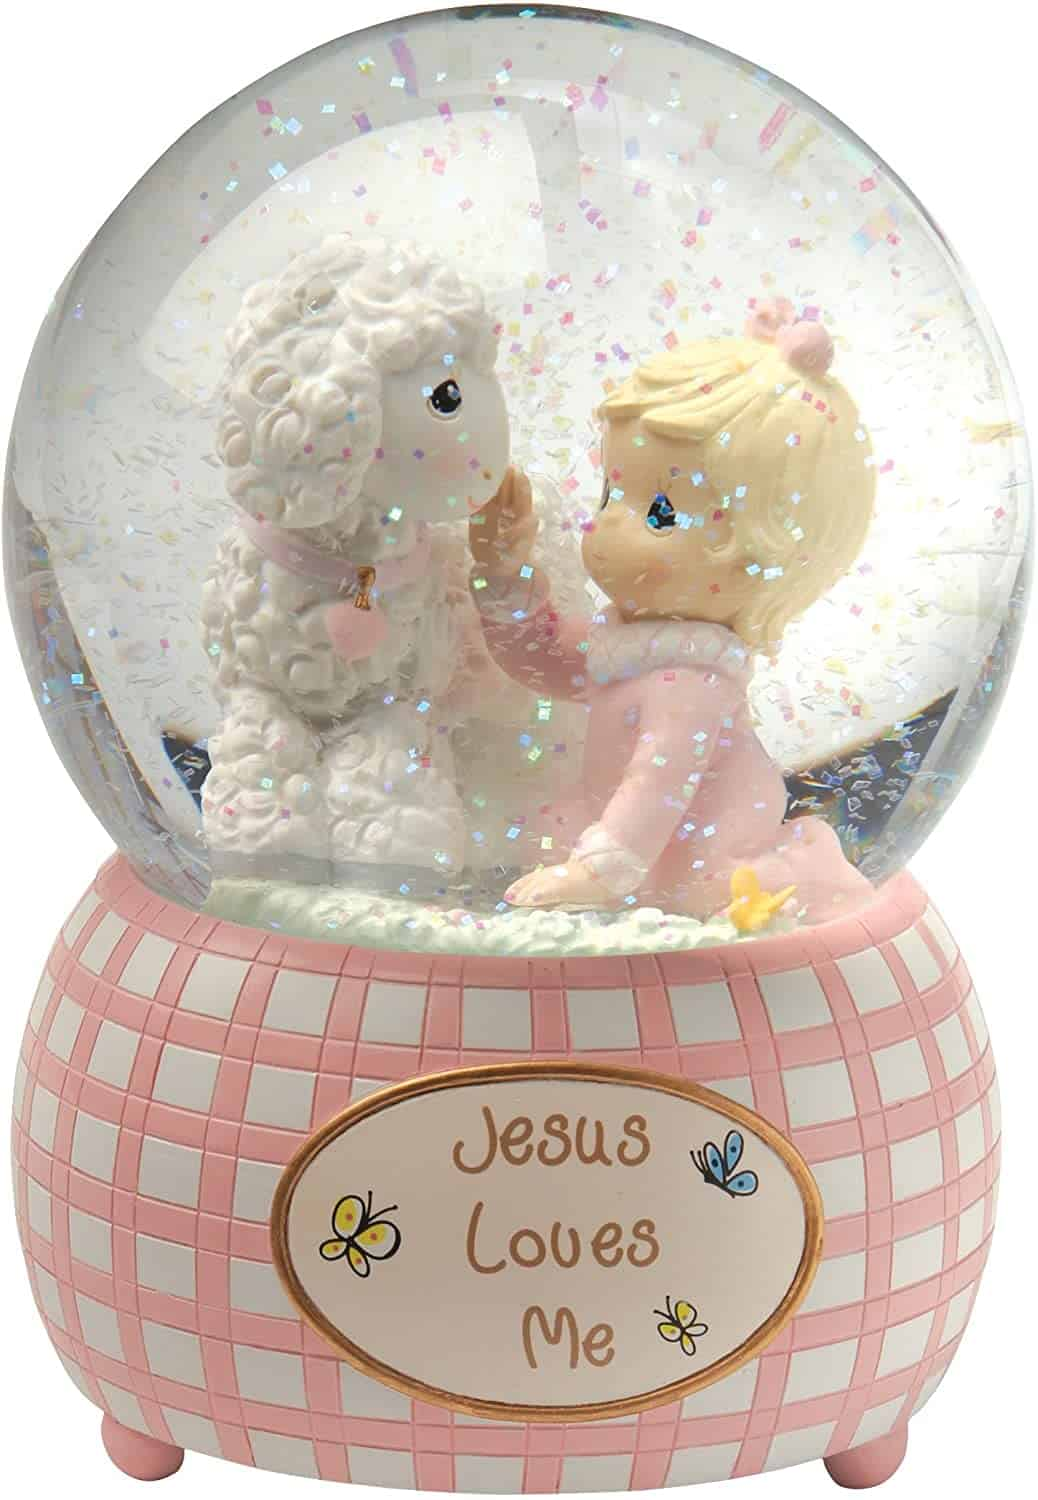 "Pink Snow Globe with text ""Jesus loves me"""